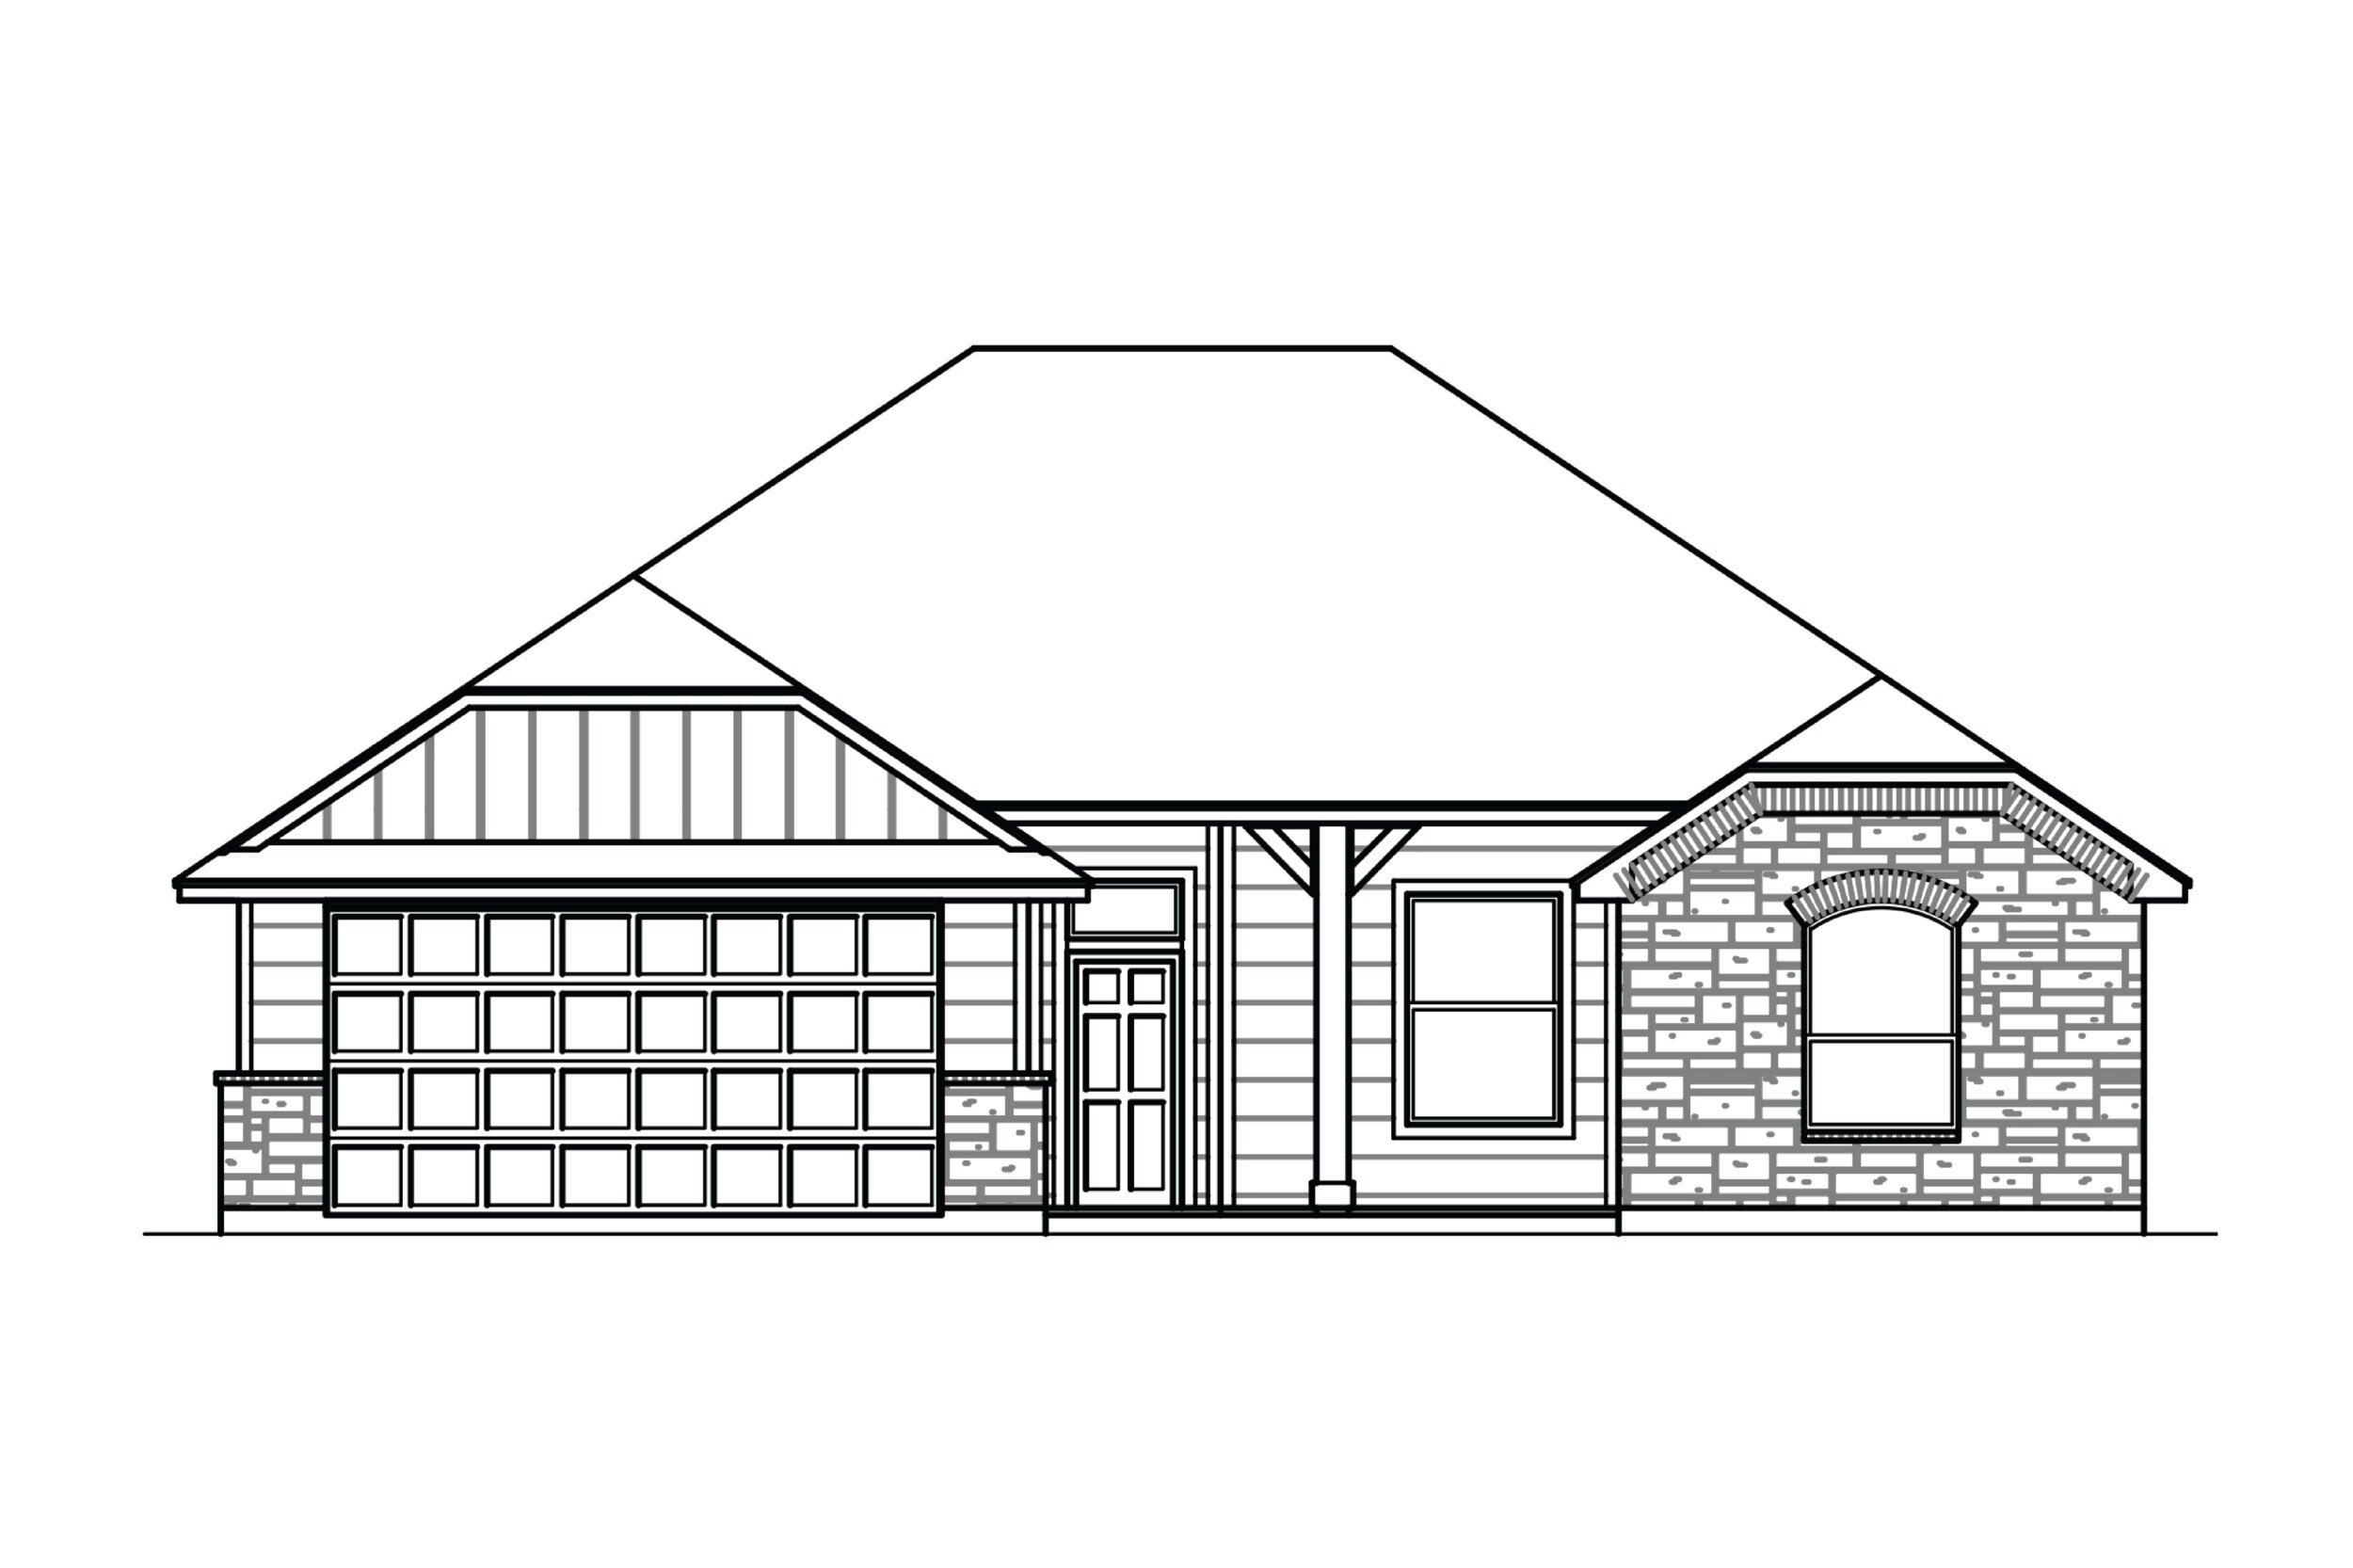 Allen - 1596 Square Feet3 Bedrooms | 2 BathroomsStarting at $225,990